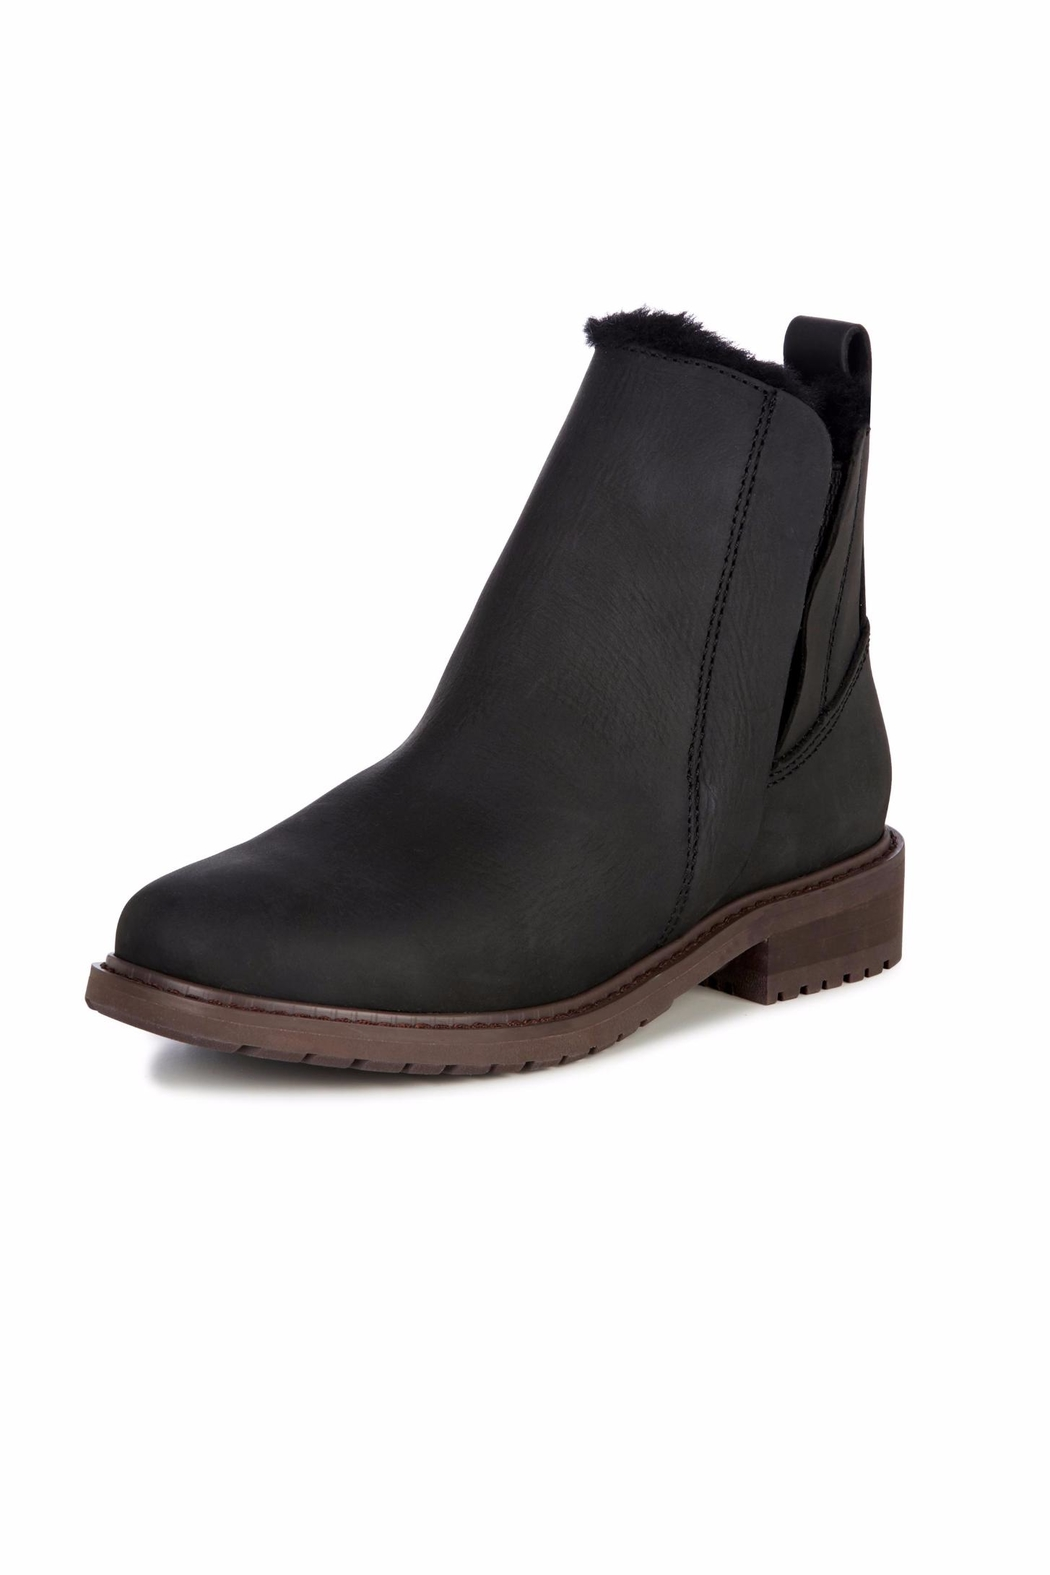 Emu Australia Pioneer Chelsea Boots - Front Cropped Image